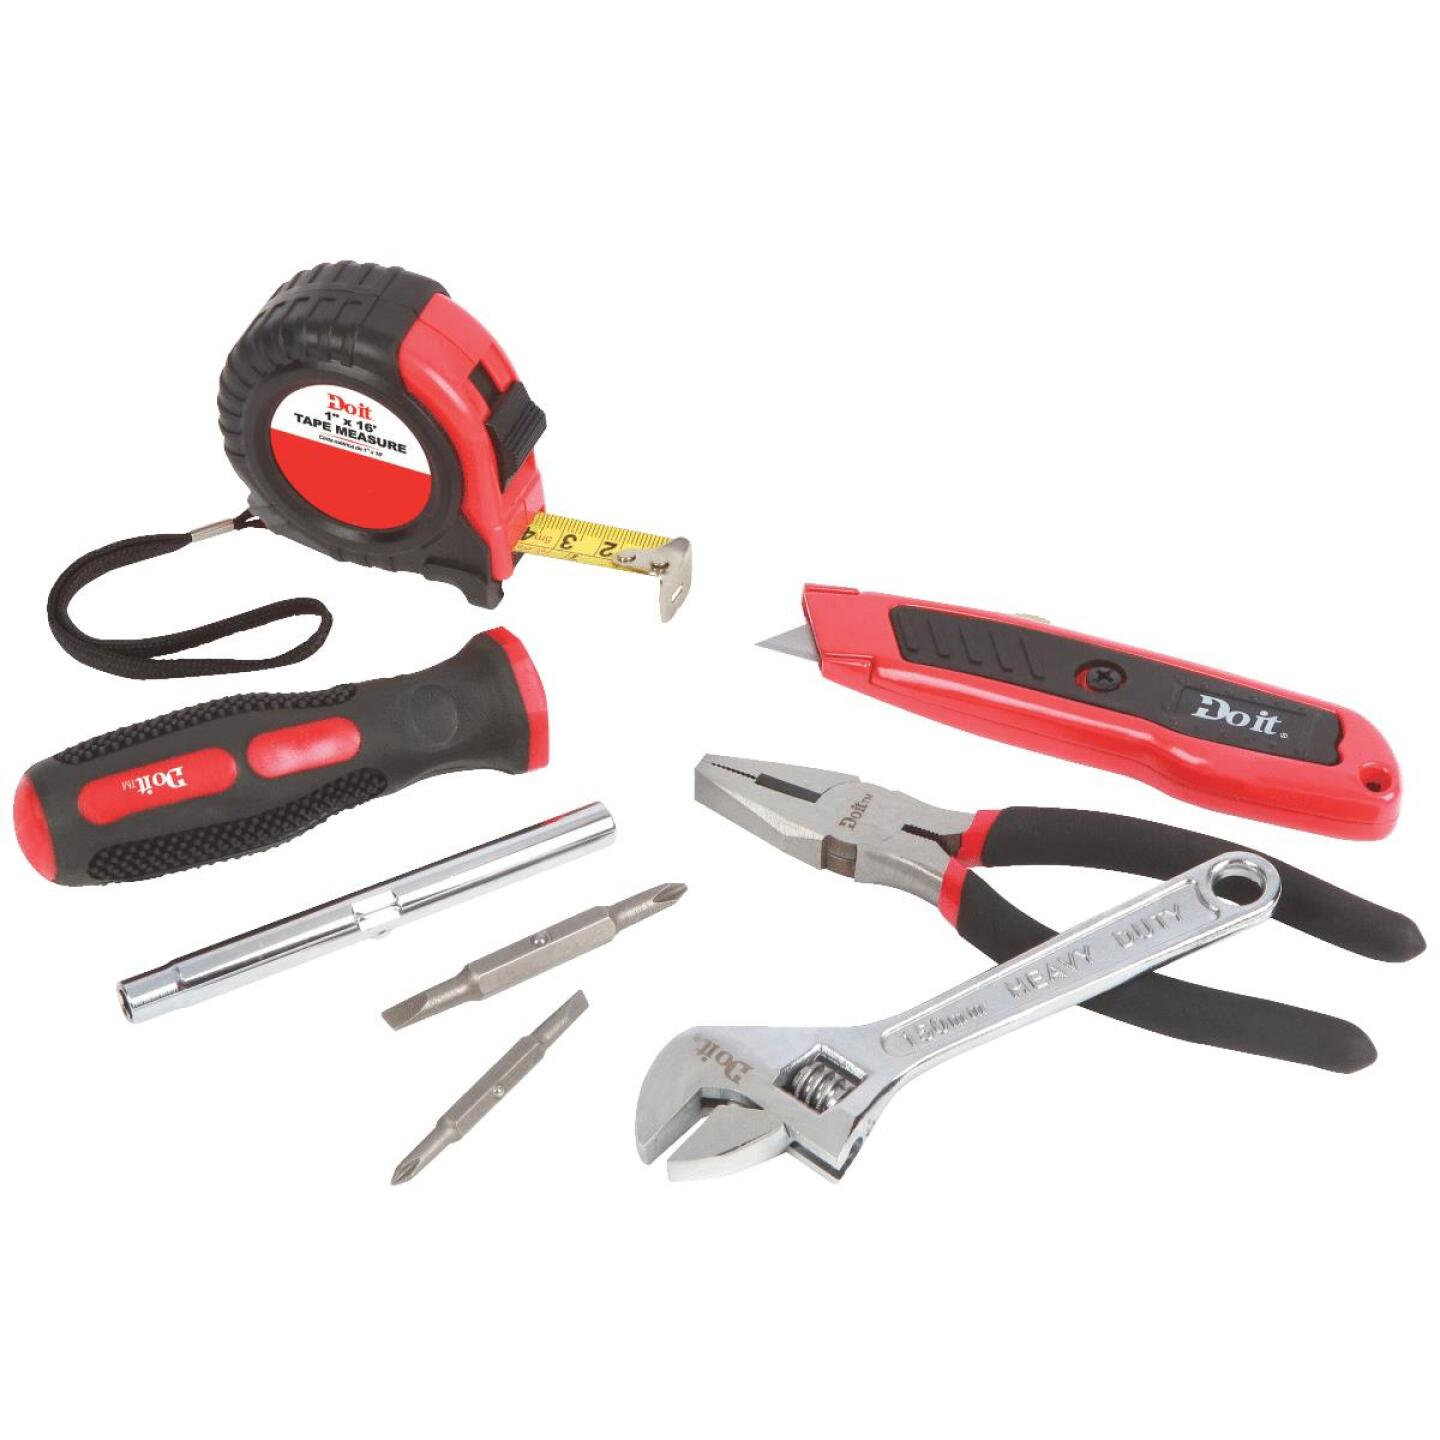 Do it Assorted Tools Home Tool Set (5-Piece) Image 4